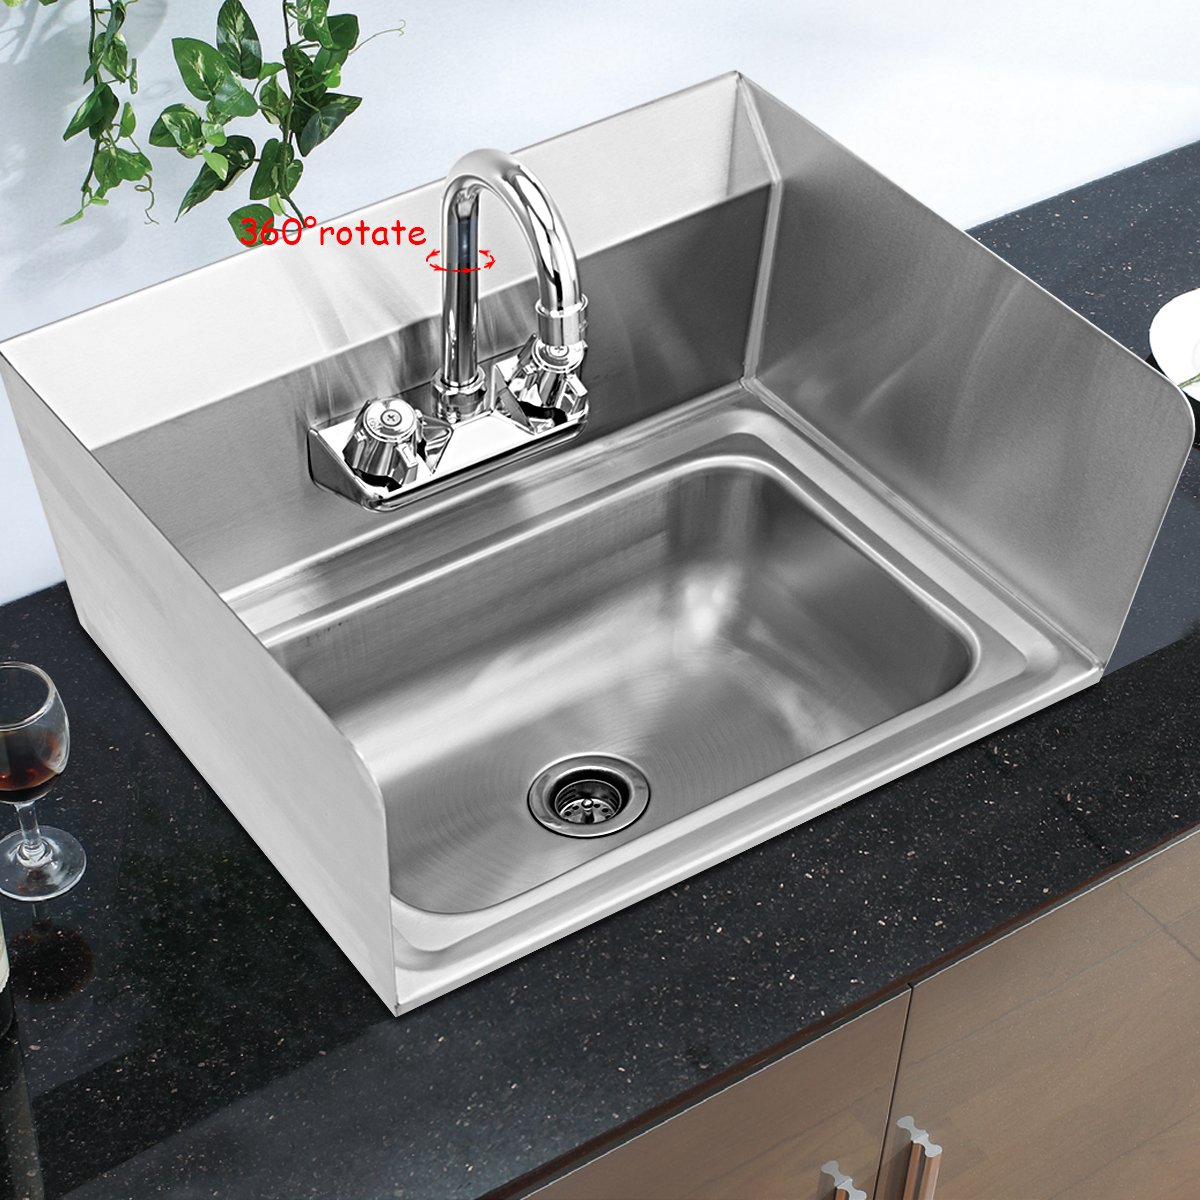 Giantex Stainless Steel Hand Washing Sink with Wall Mount Faucet & Side Splashes NSF Commercial Kitchen Heavy Duty Hot & Cold Temperature Water Inlet Washing Basin, Silver by Giantex (Image #6)